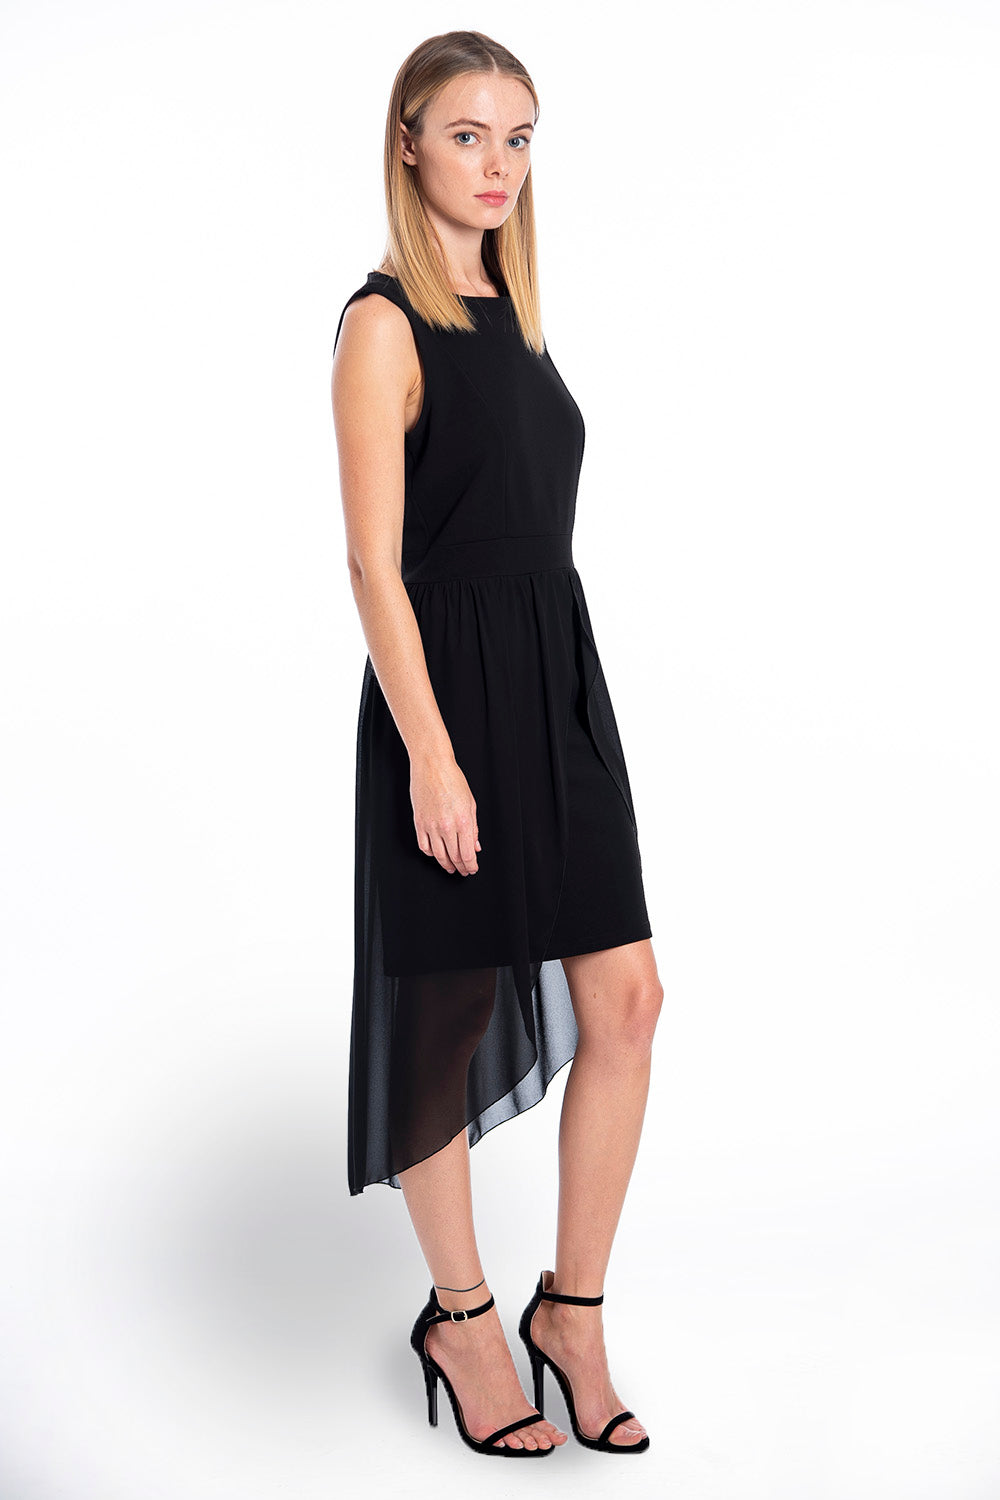 Akè sleeveless mini dress with chiffon layering